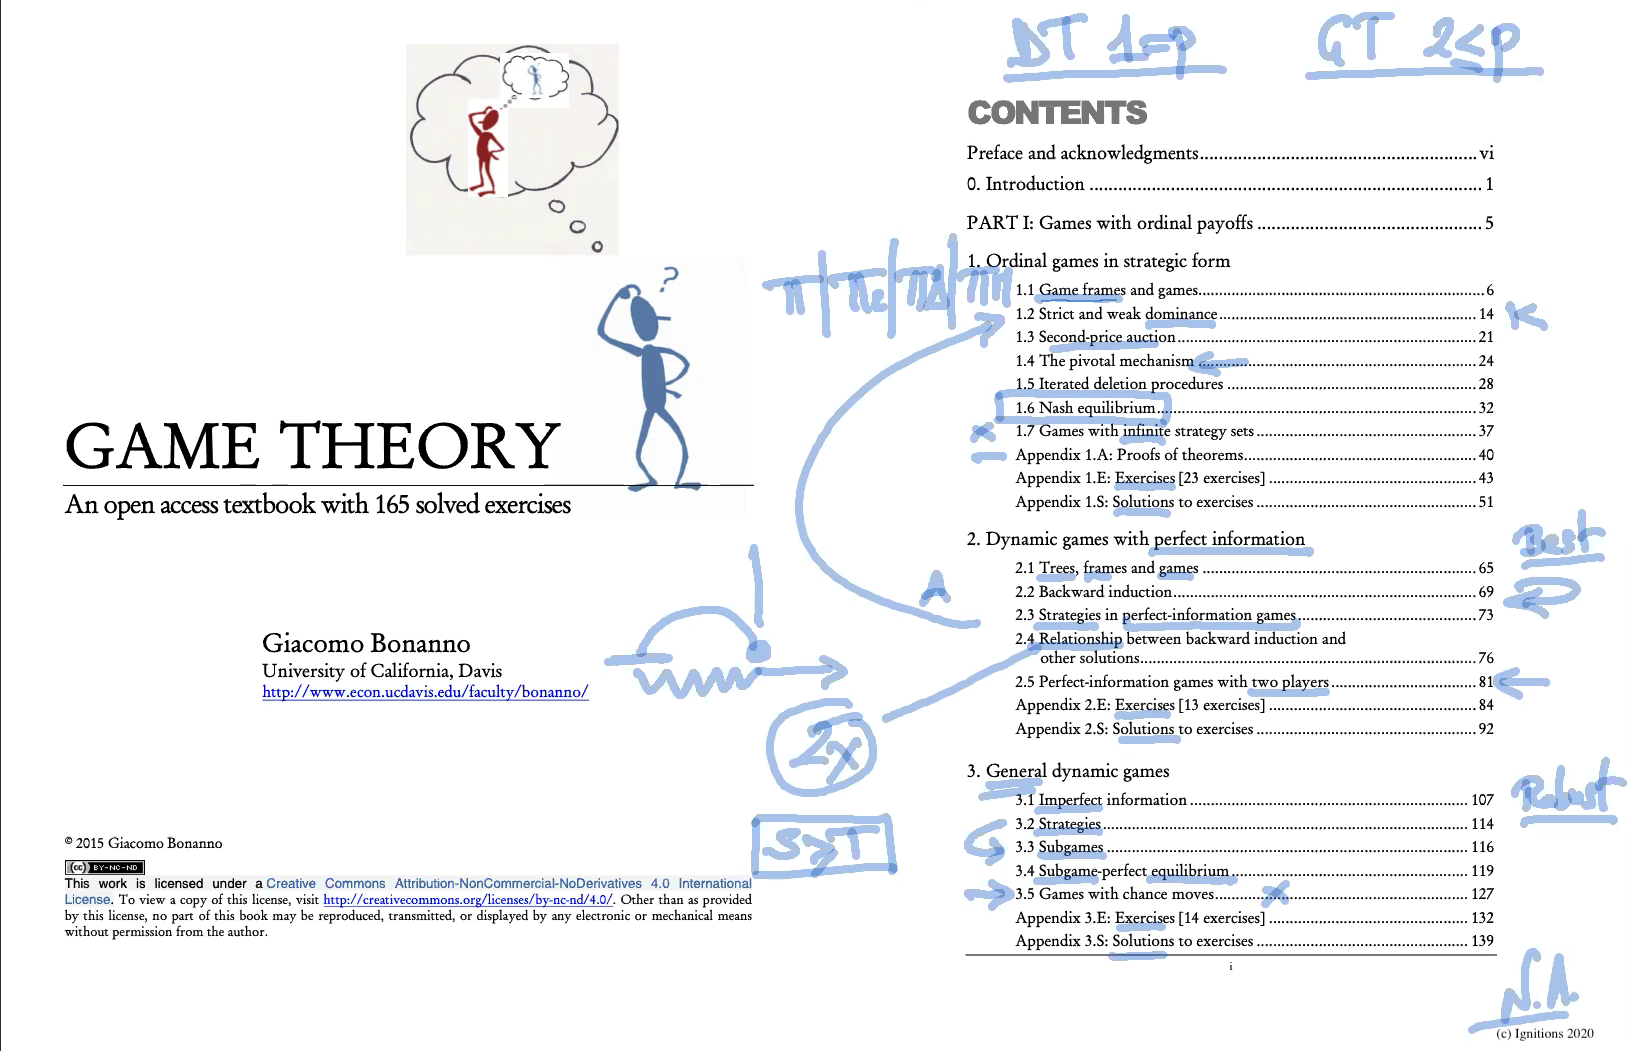 56817 - e-Lesson I: Introduction to Game Theory. (Dessin)